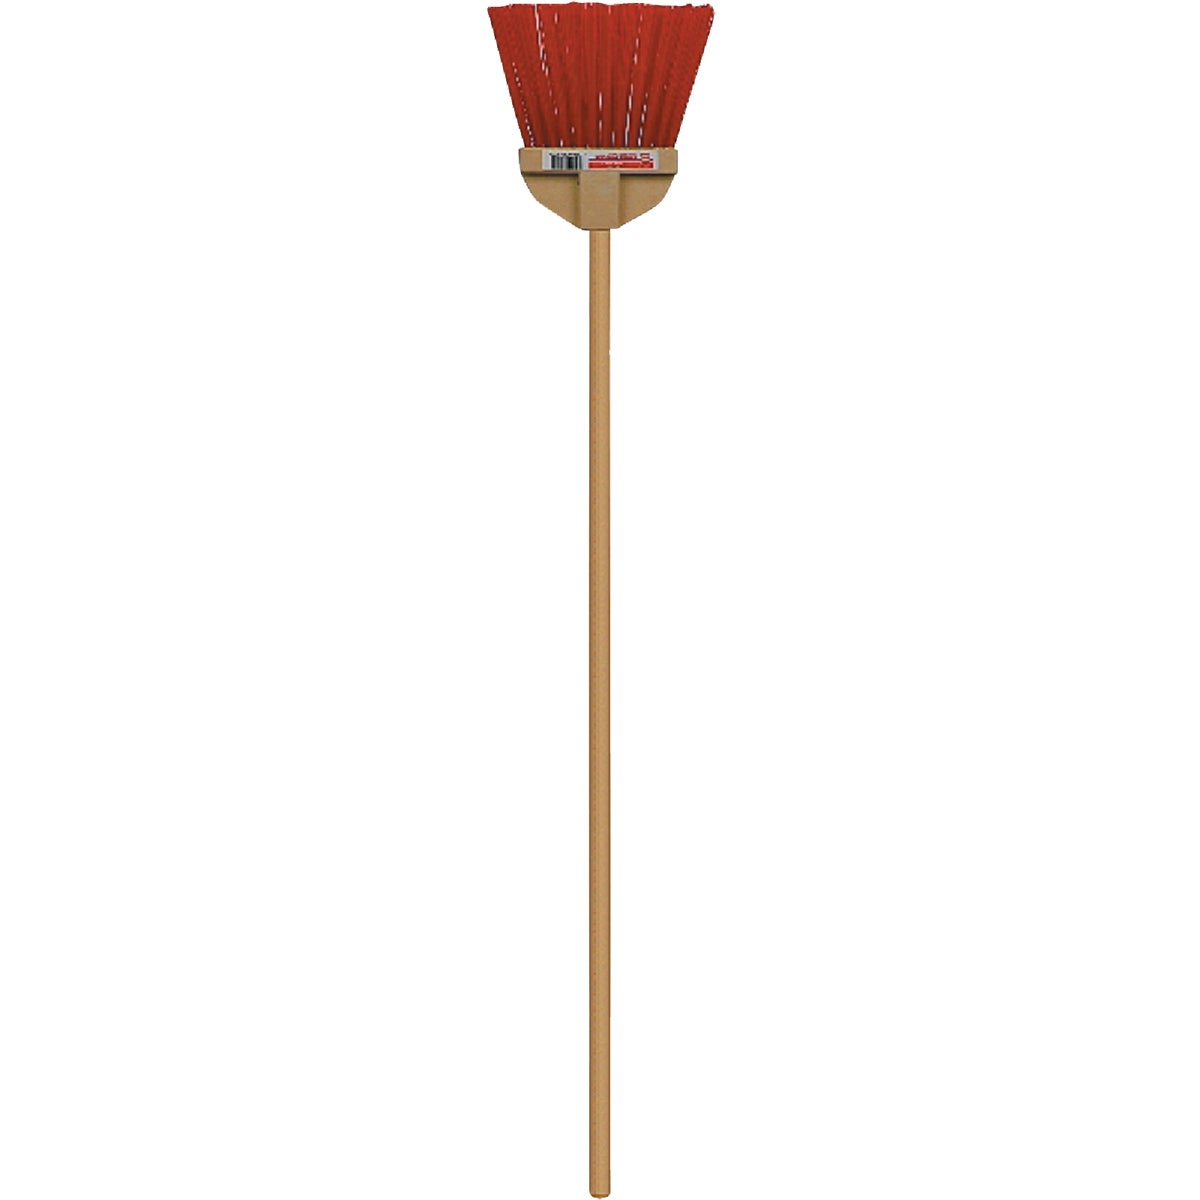 SAND LOBBY BROOM - 5411-12 by Bruske Products